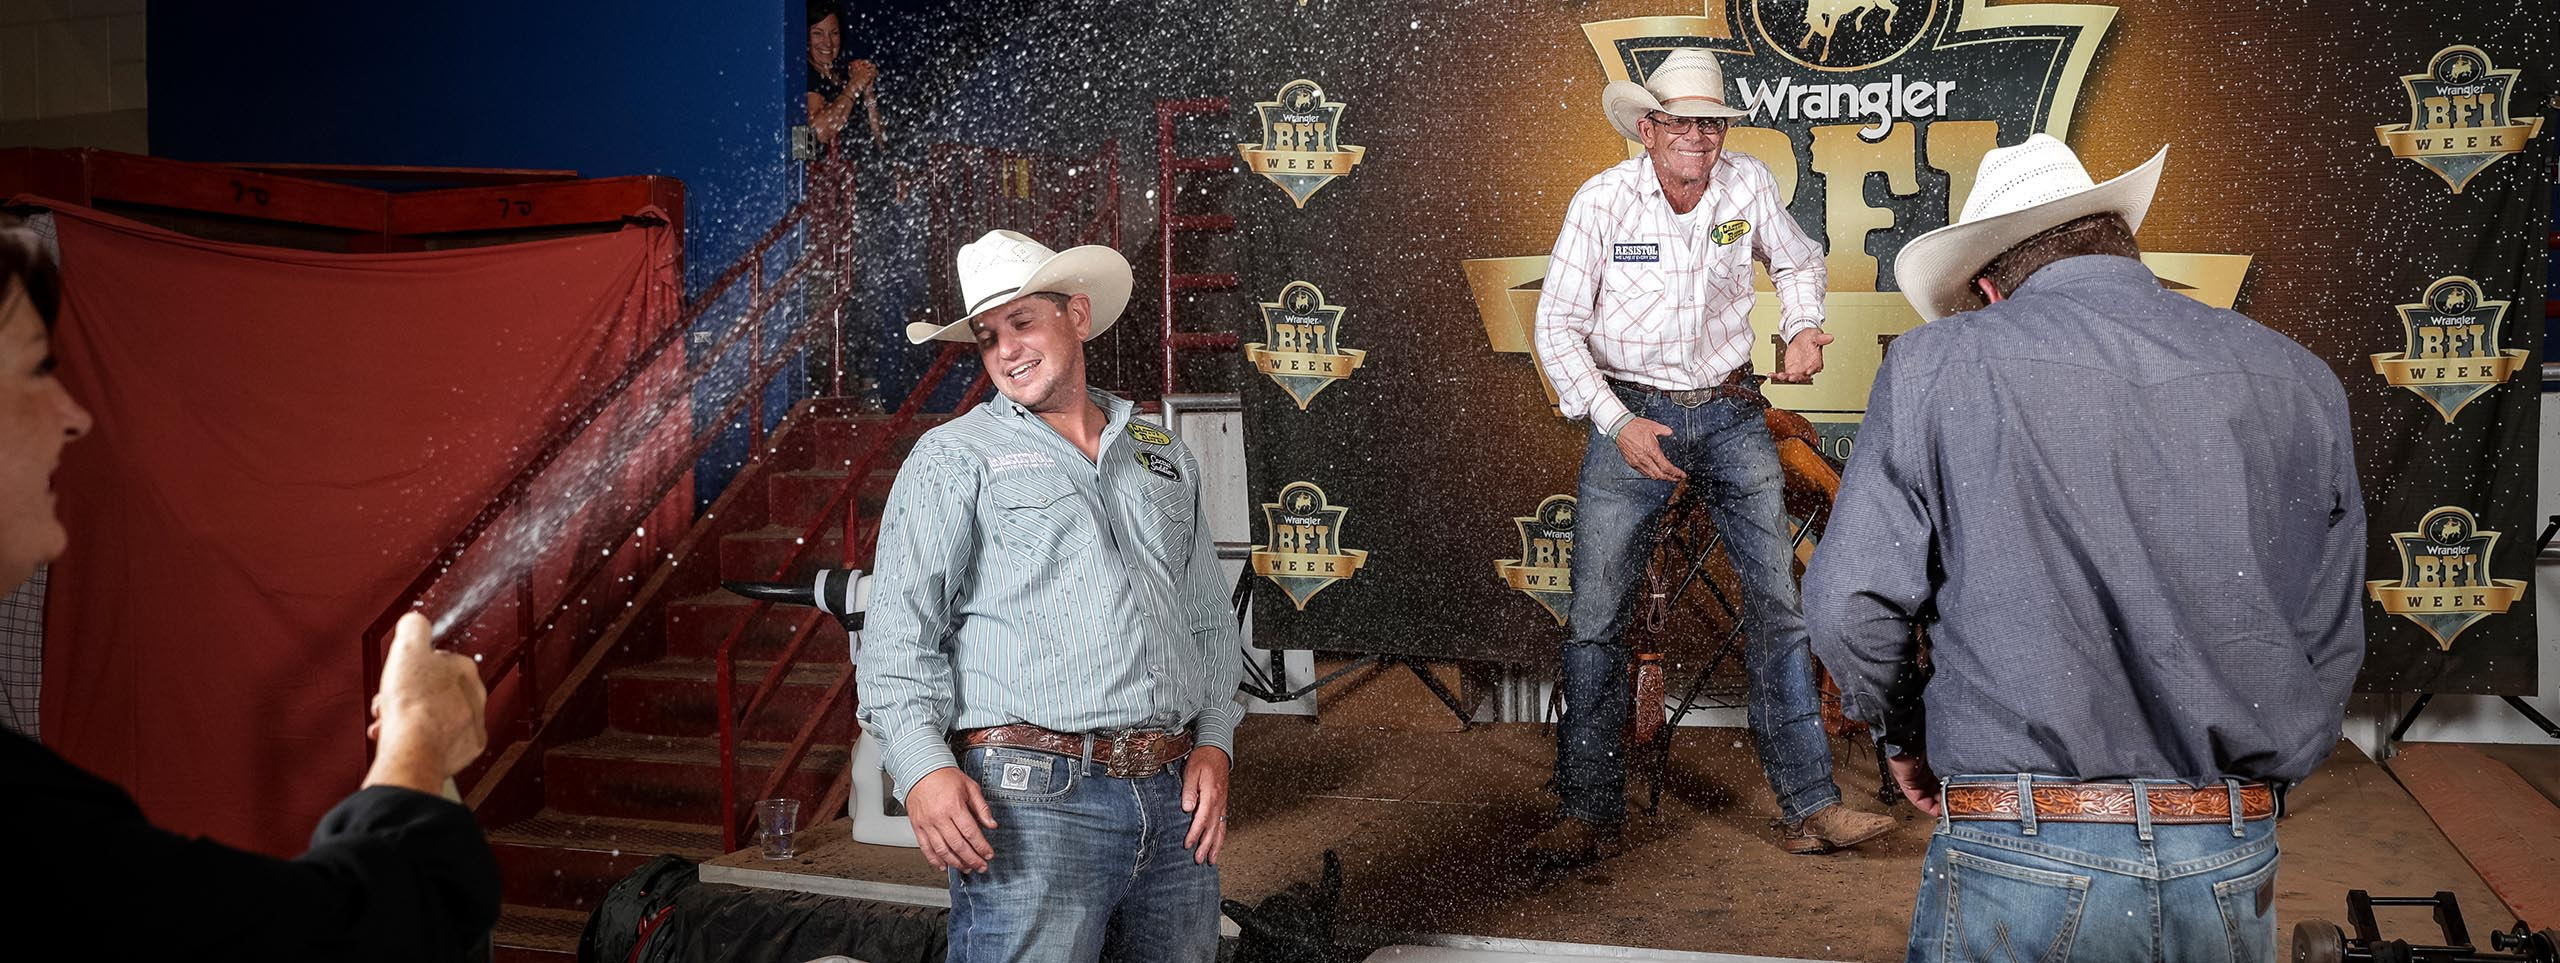 Cactus Kingpins Win 11.5 for $100,000 In Guthrie